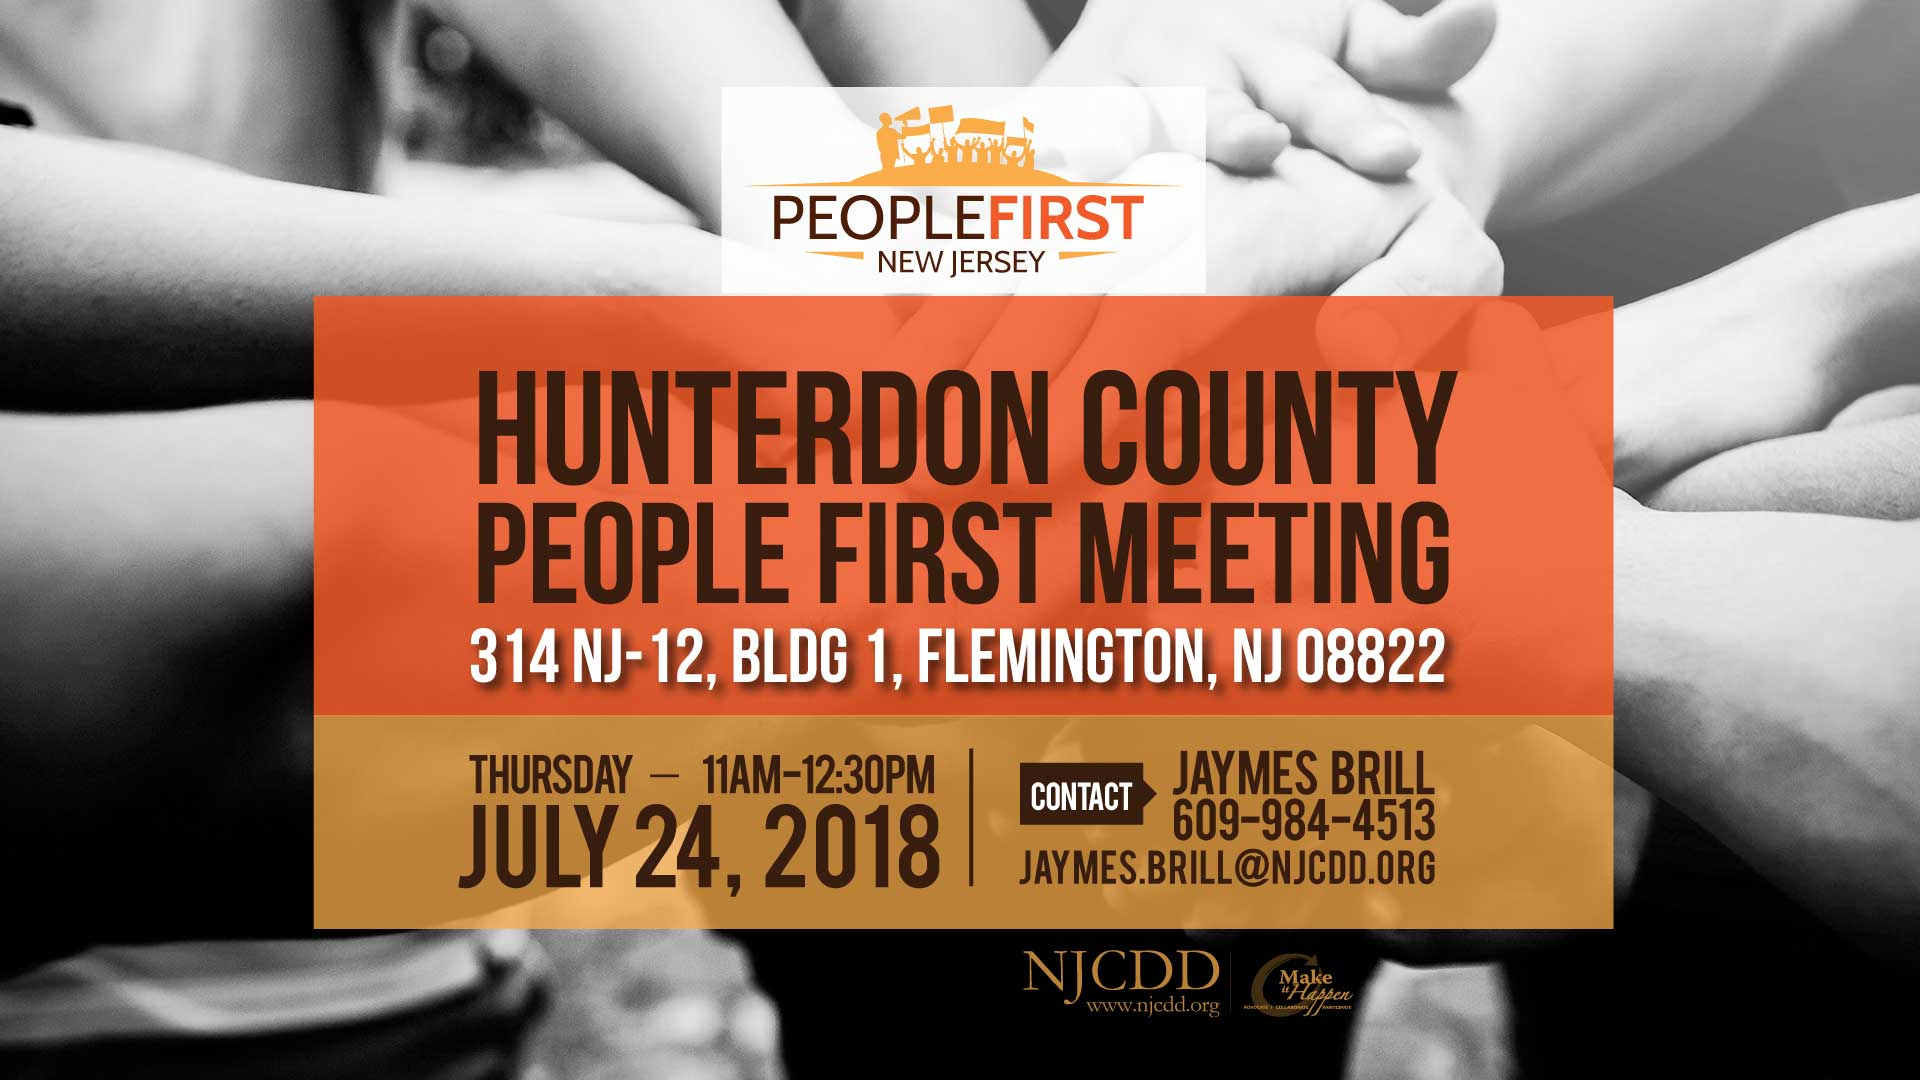 Hunterdon County People First | July 24th 11am-12:30pm | 314 NJ-12, Bldg 1, Flemington, NJ 08822